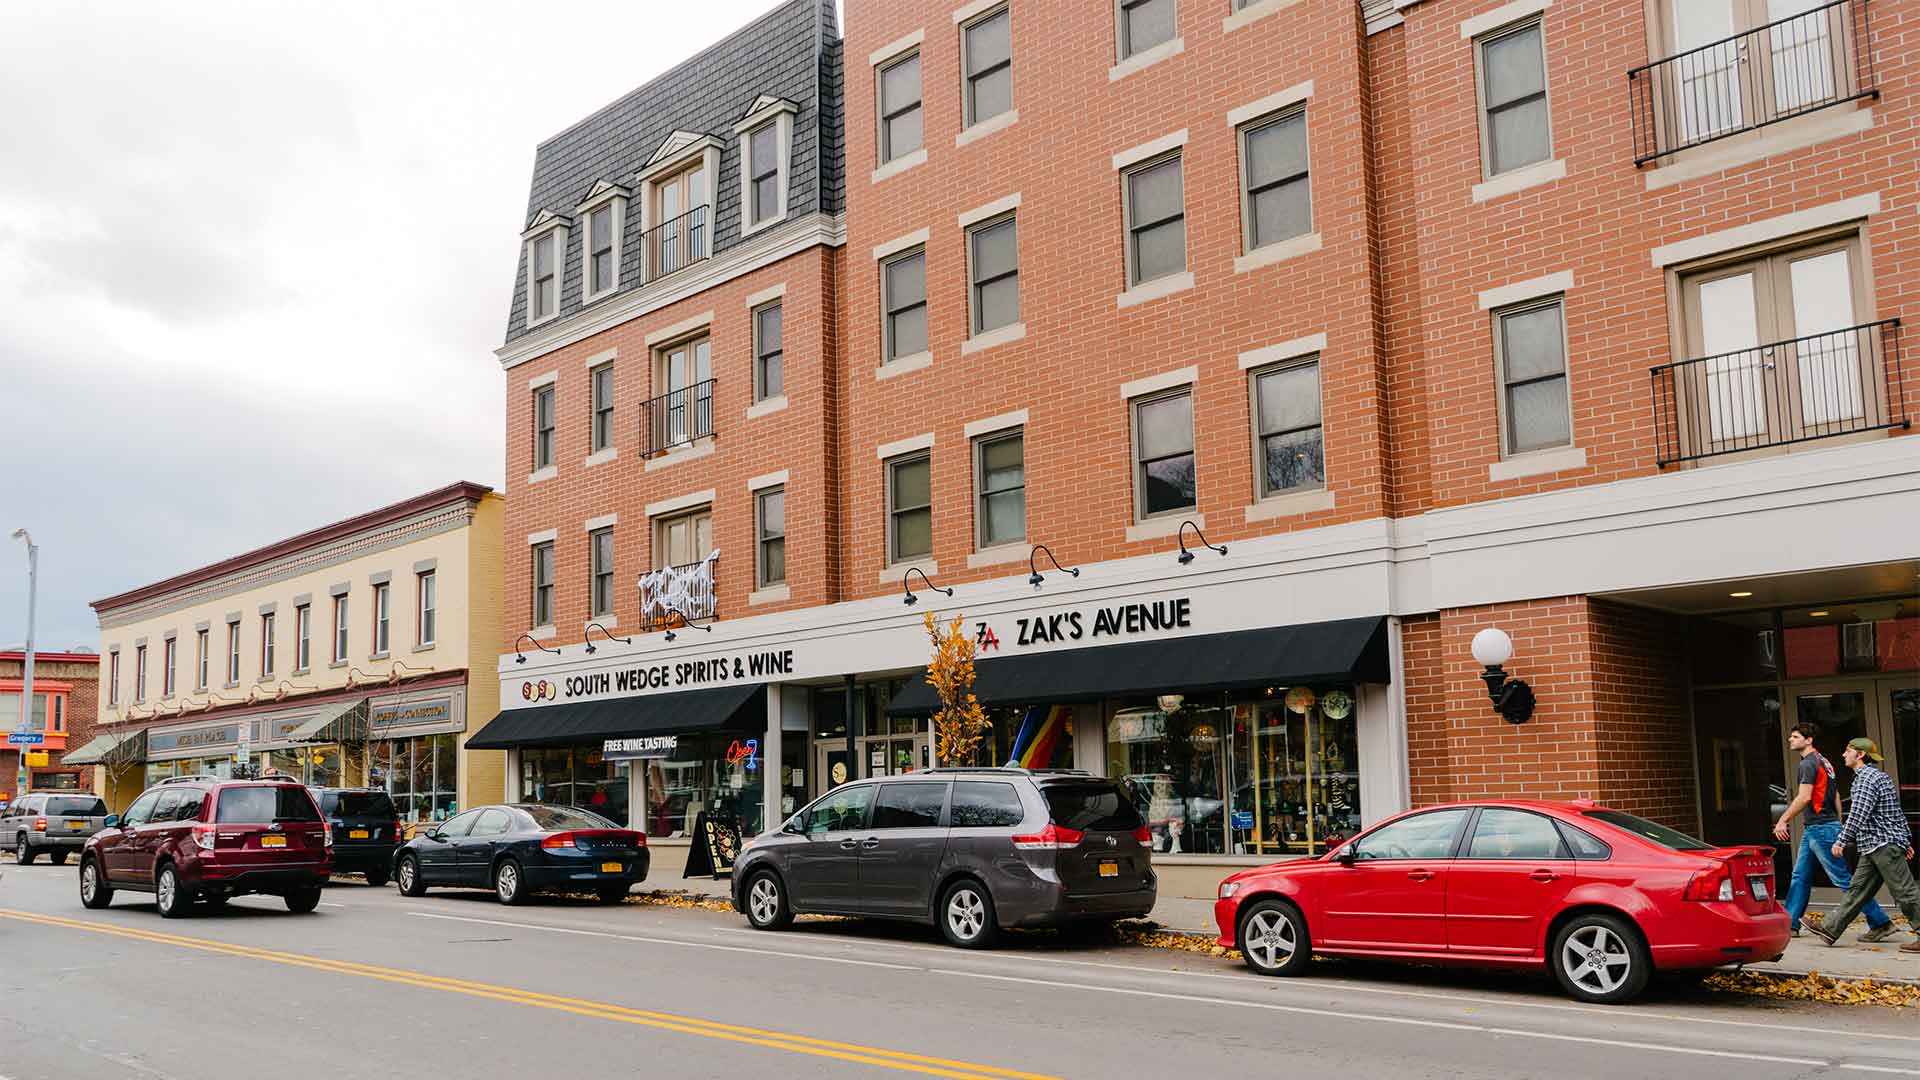 Shopping on South Avenue in South Wedge